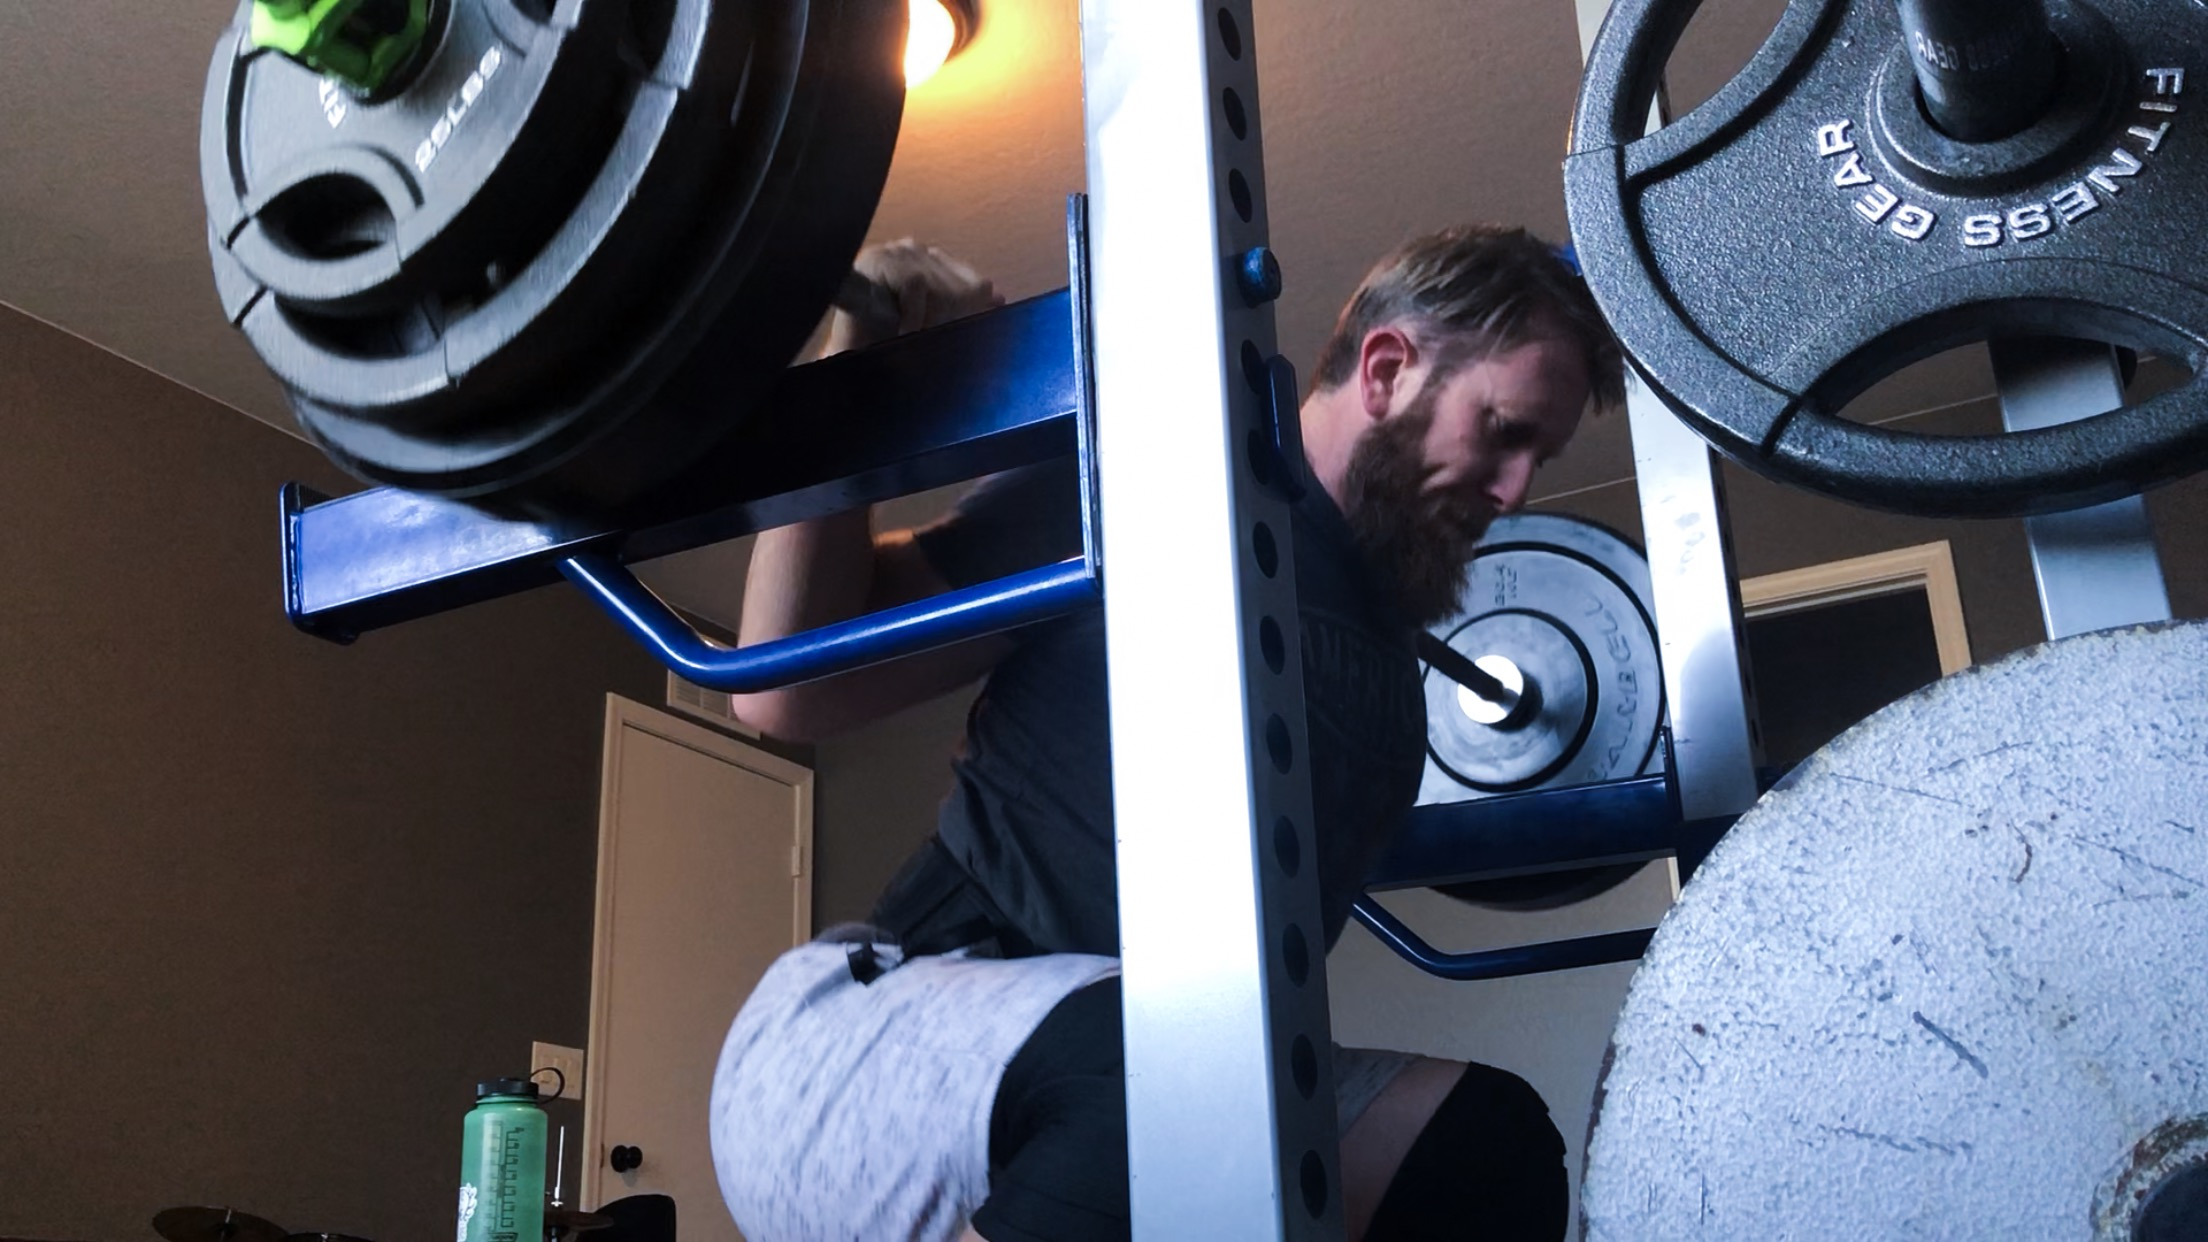 Barbells are a significant part of my anti-anxiety regimen!